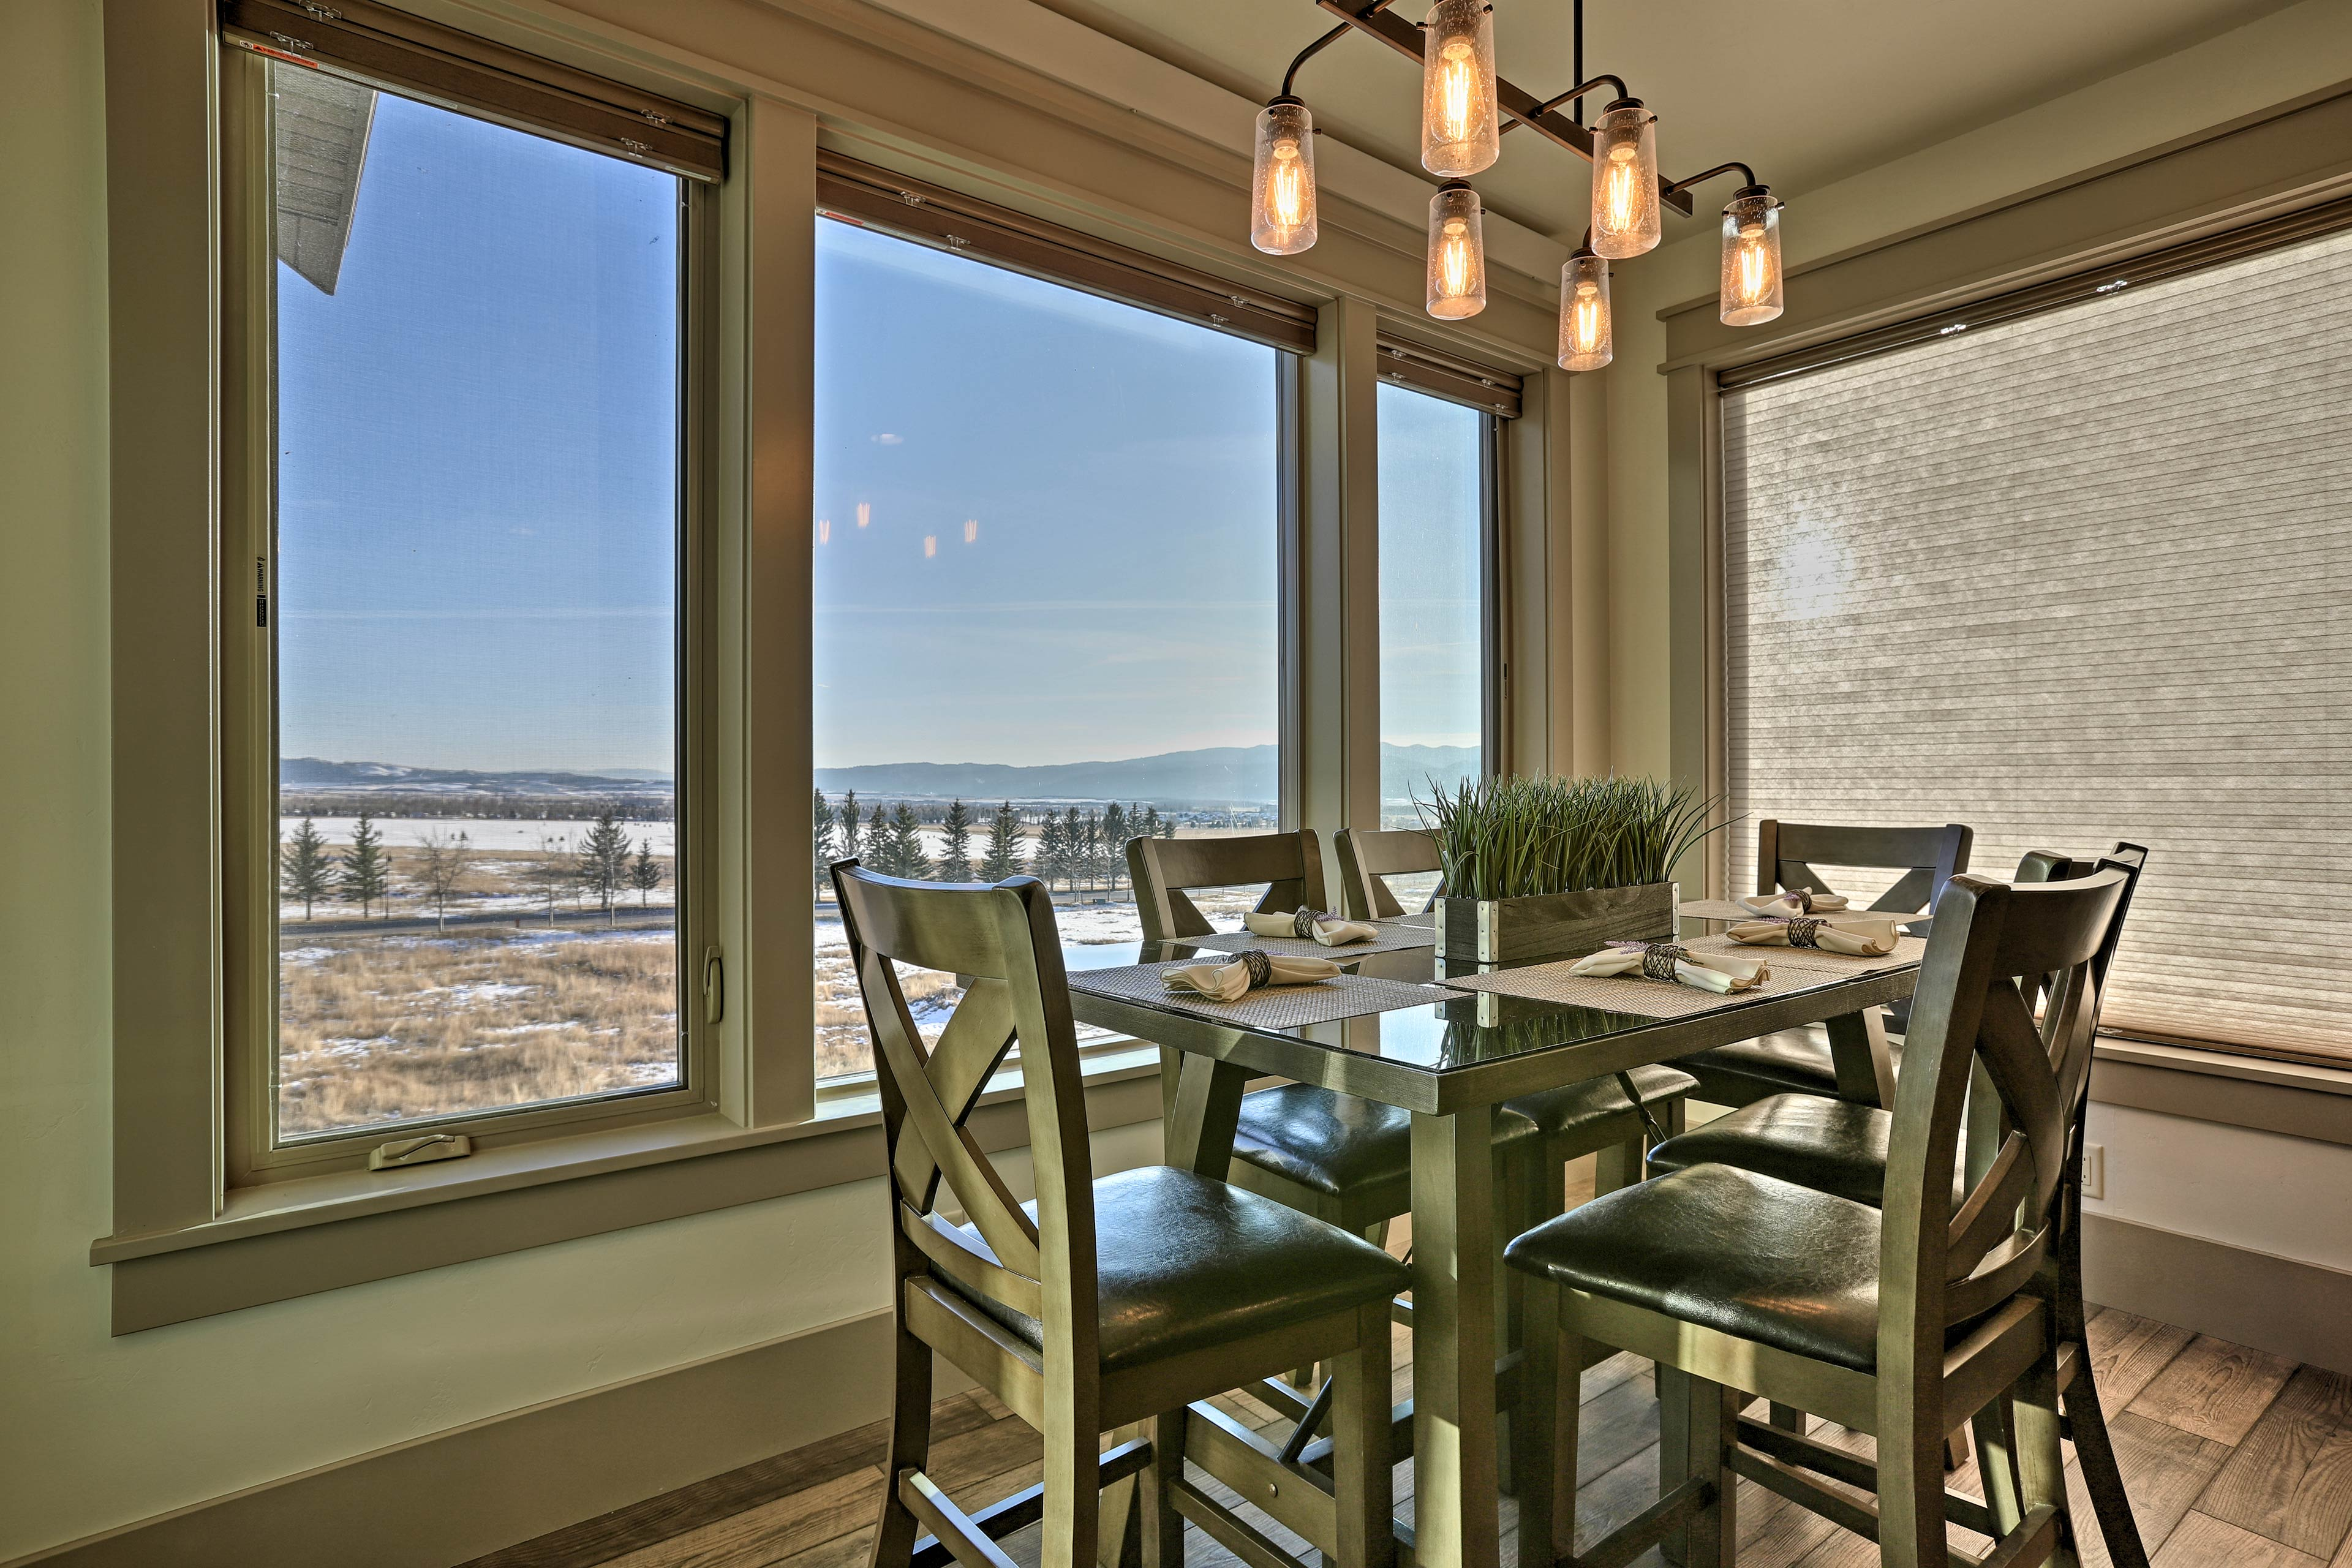 Taste the chef's creations while relishing the home's stunning views.